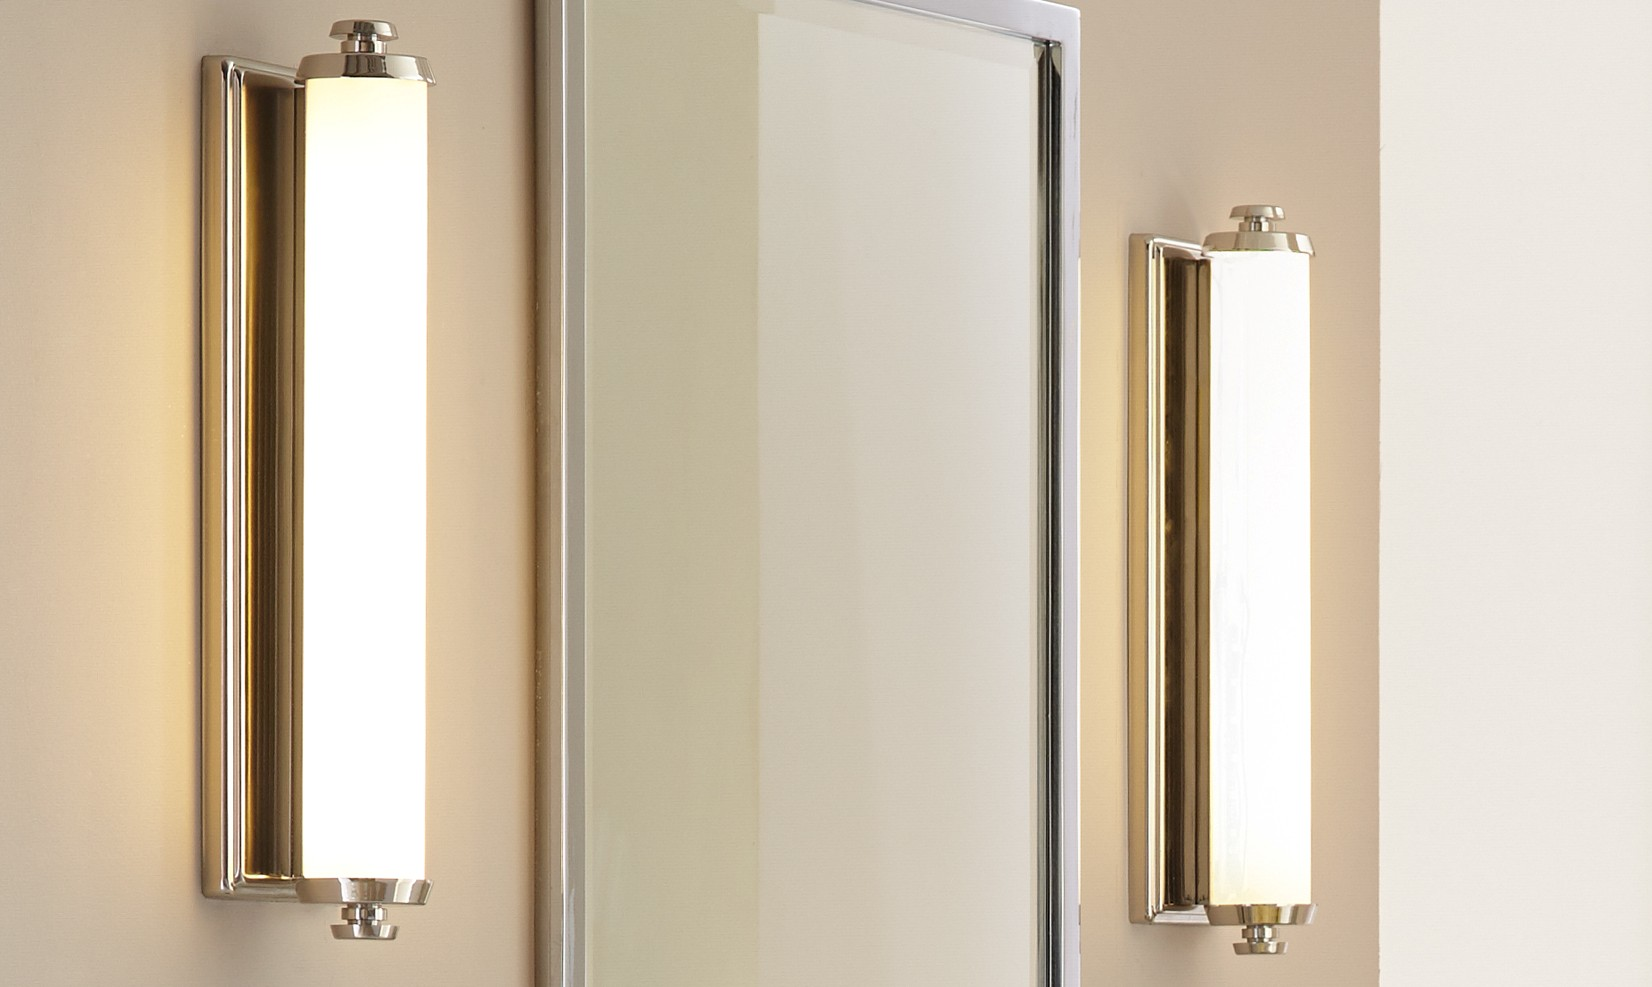 Bathroom Sconces - Bathroom Fixtures - Lighting Fixtures | Lighting ...